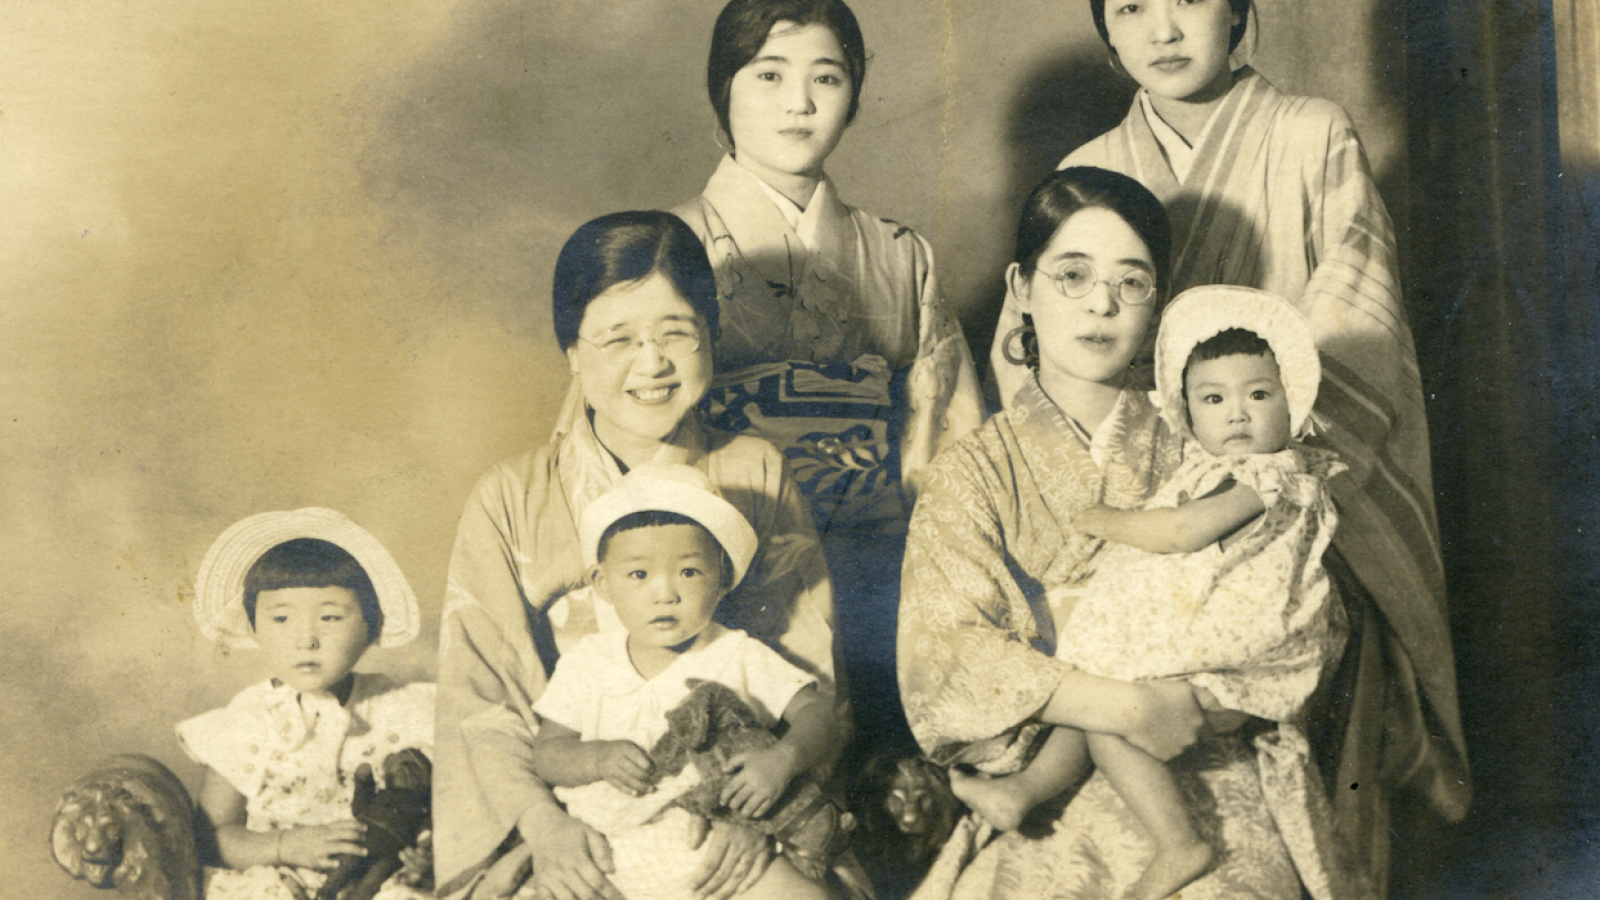 Black and white photo of Sakaoka as baby with family